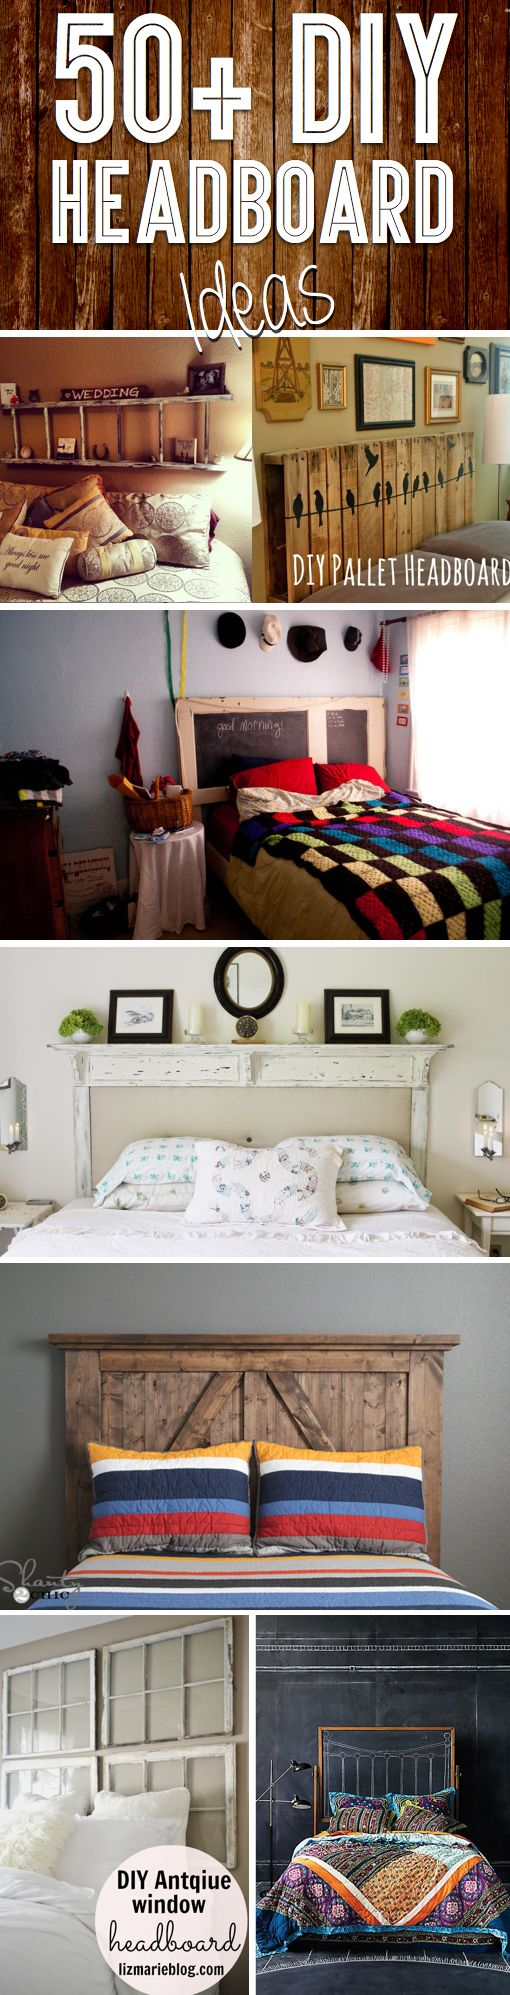 51 51 diy headboard ideas to make the bed of your dreams snappy pixels - Here You Will Find No Less Than 50 Different Diy Headboard Ideas That Will Help You Spice Up Your Bedroom And Make Your Bed